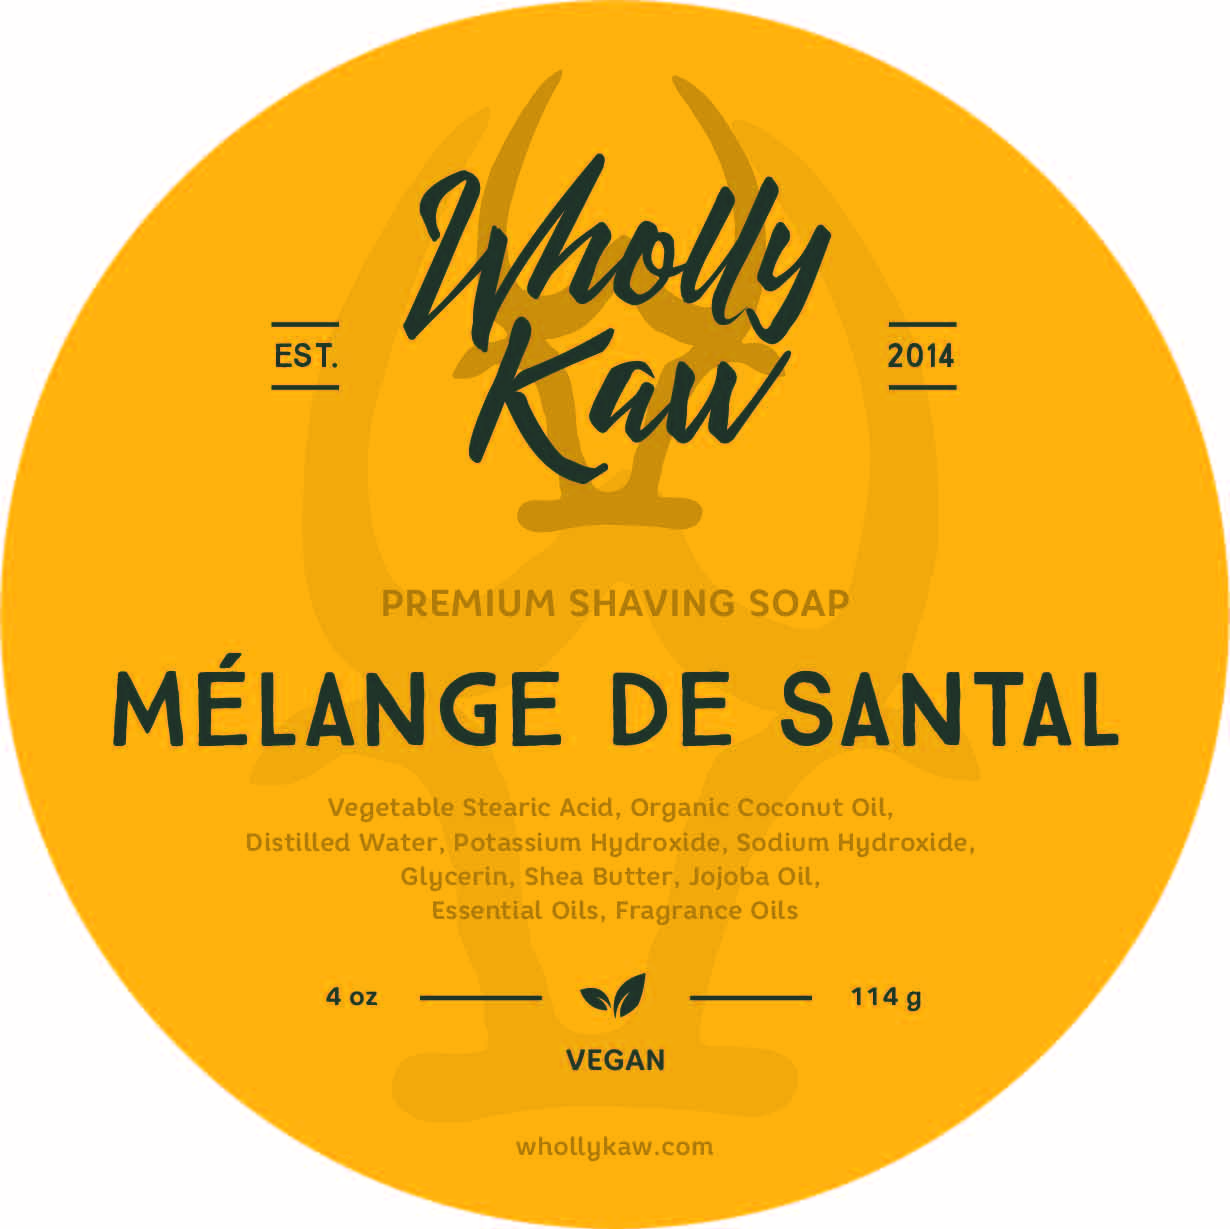 Wholly Kaw - Mélange de Santal - Soap (Vegan) image